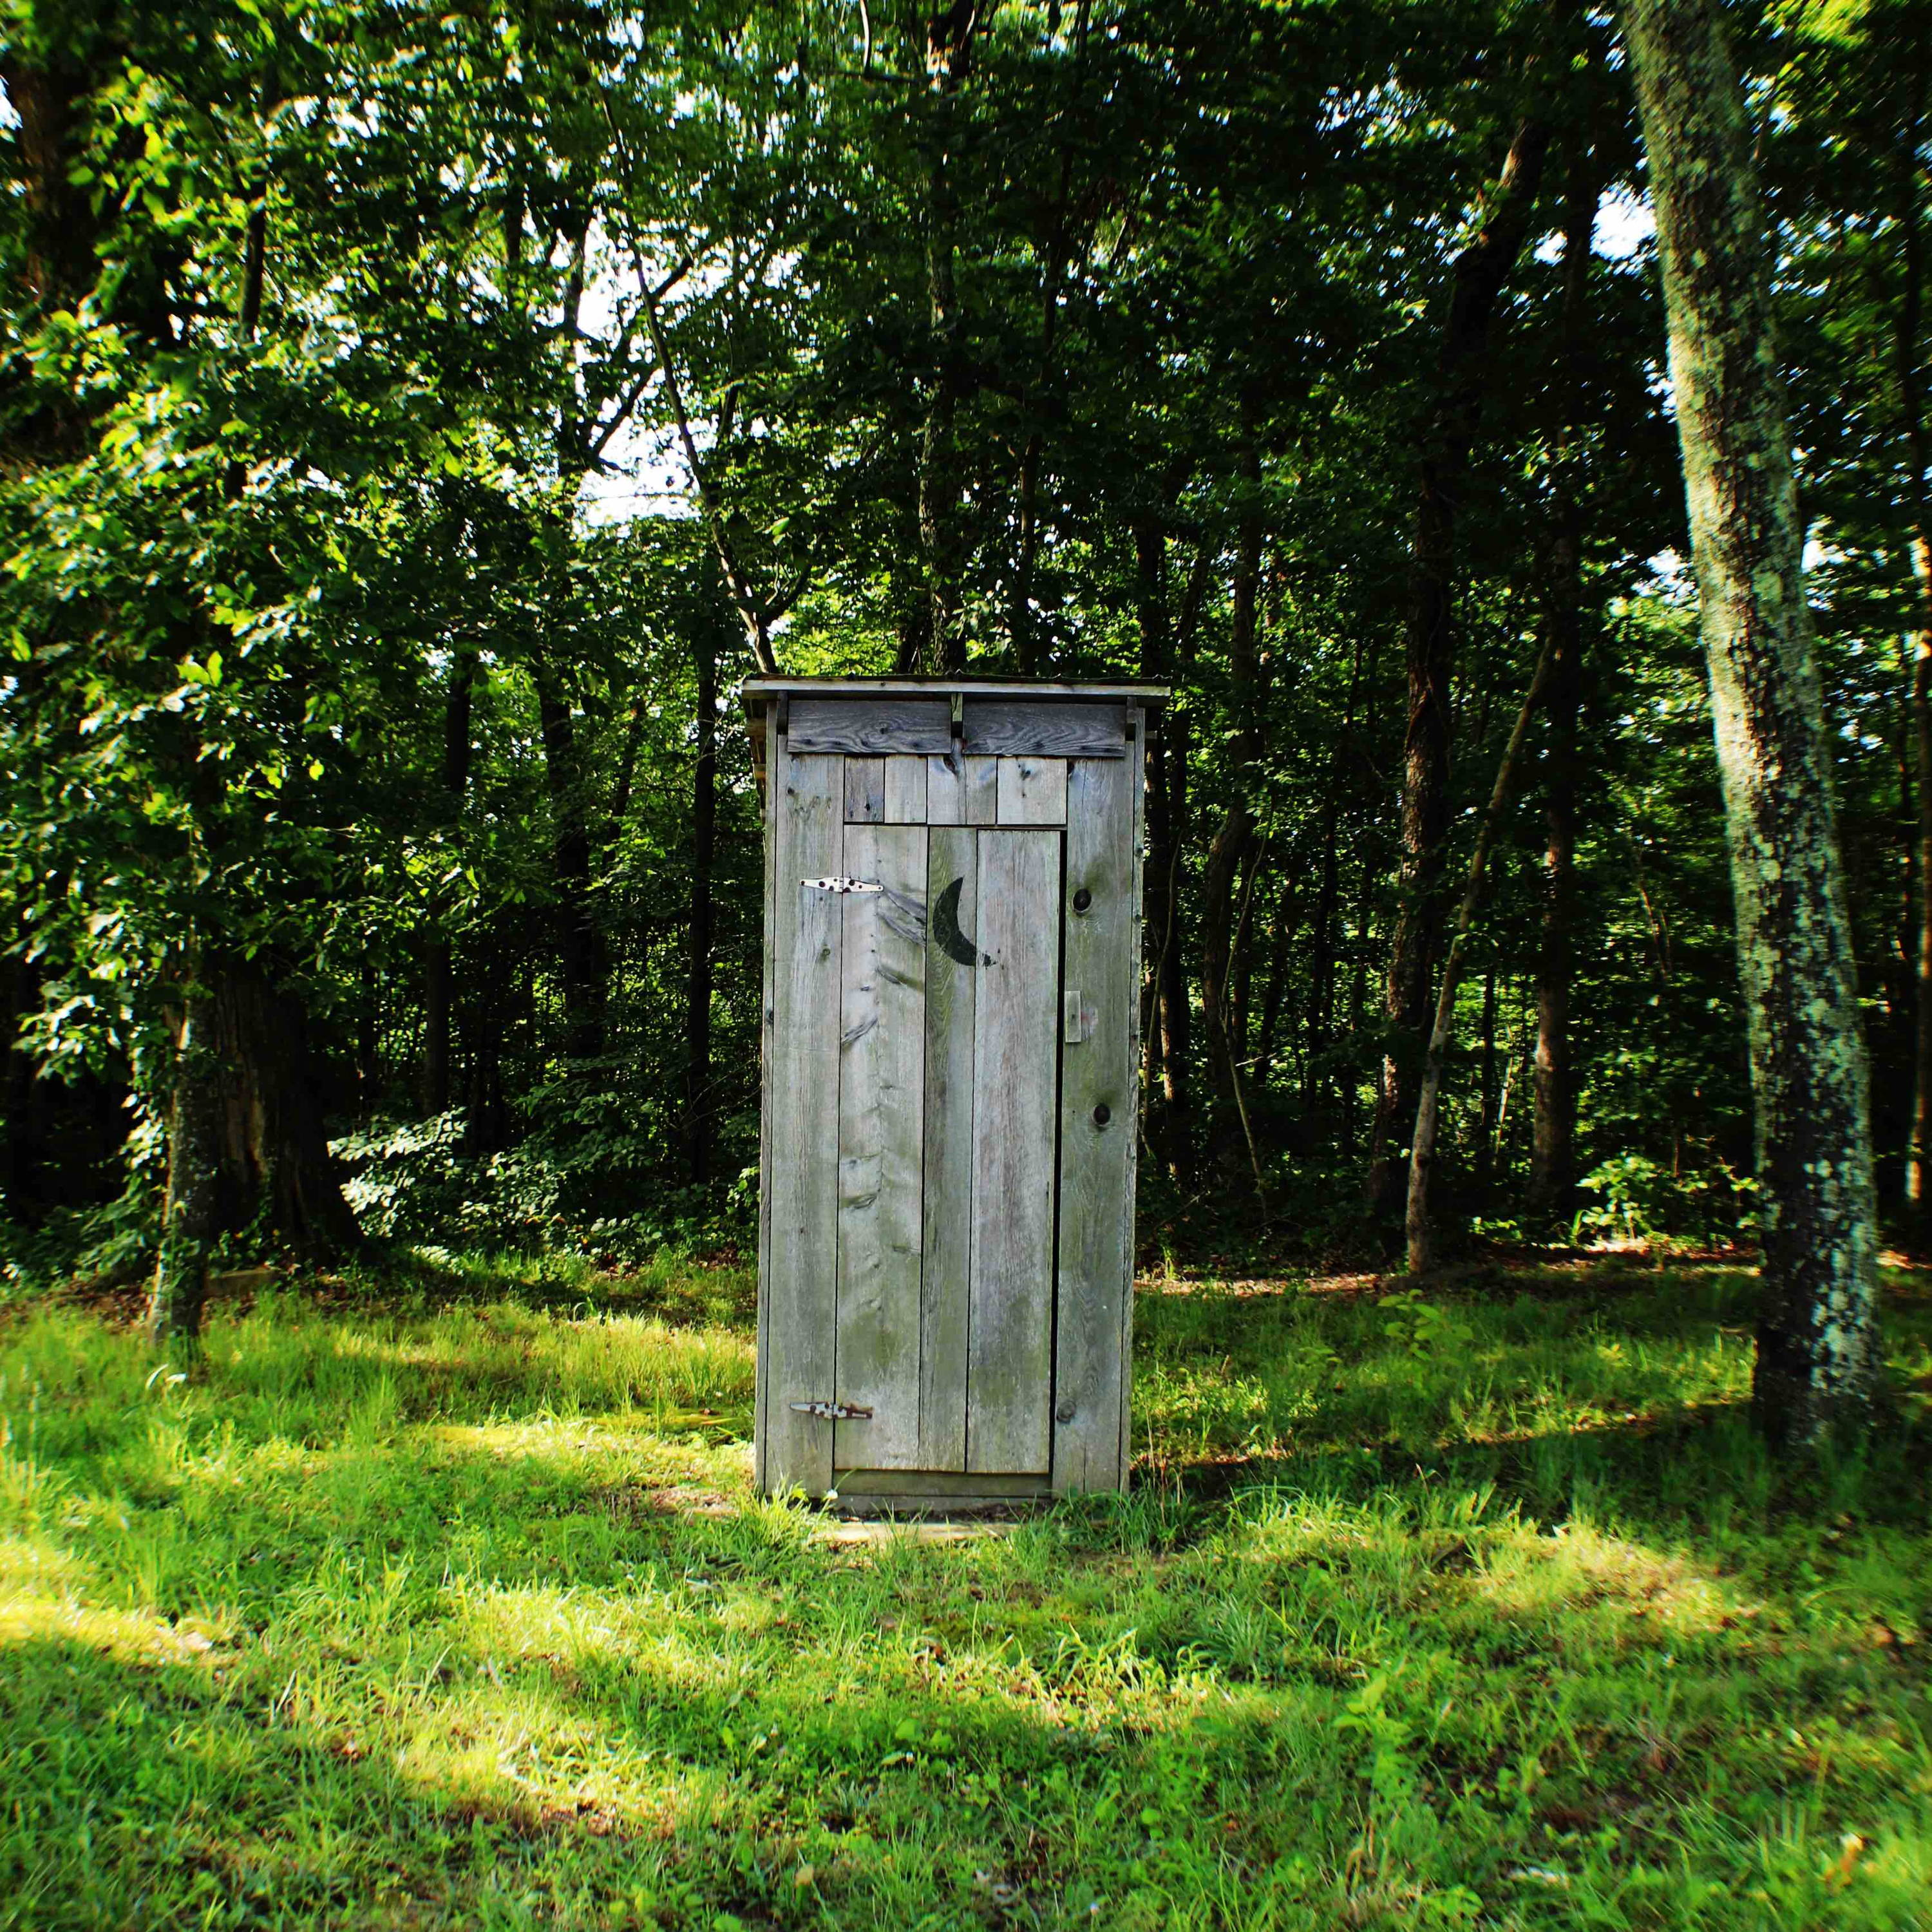 Outdoor toilet shed